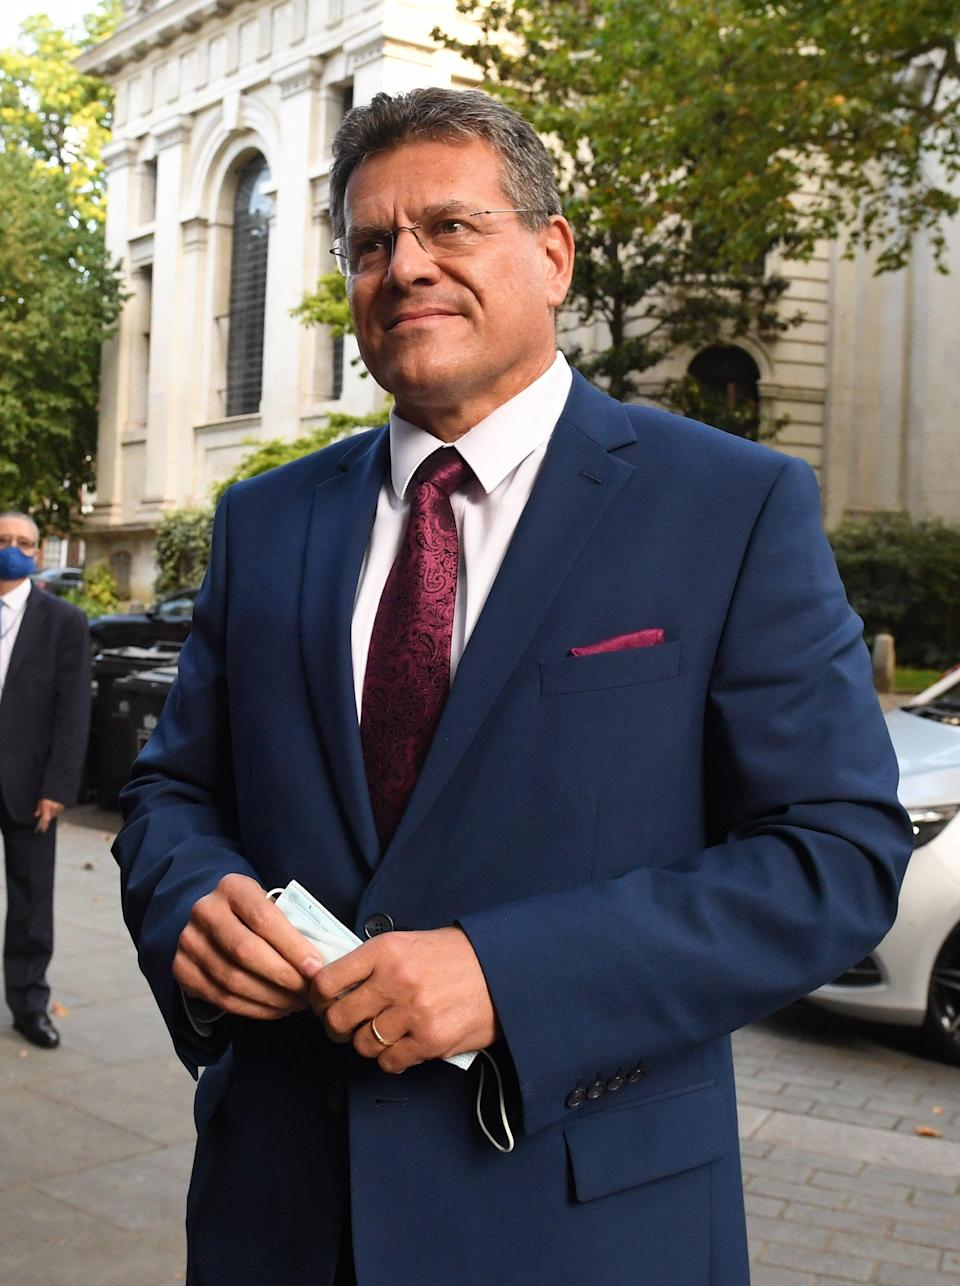 Maros Sefcovic, European Commission vice president (Stefan Rousseau/PA) (PA Wire)